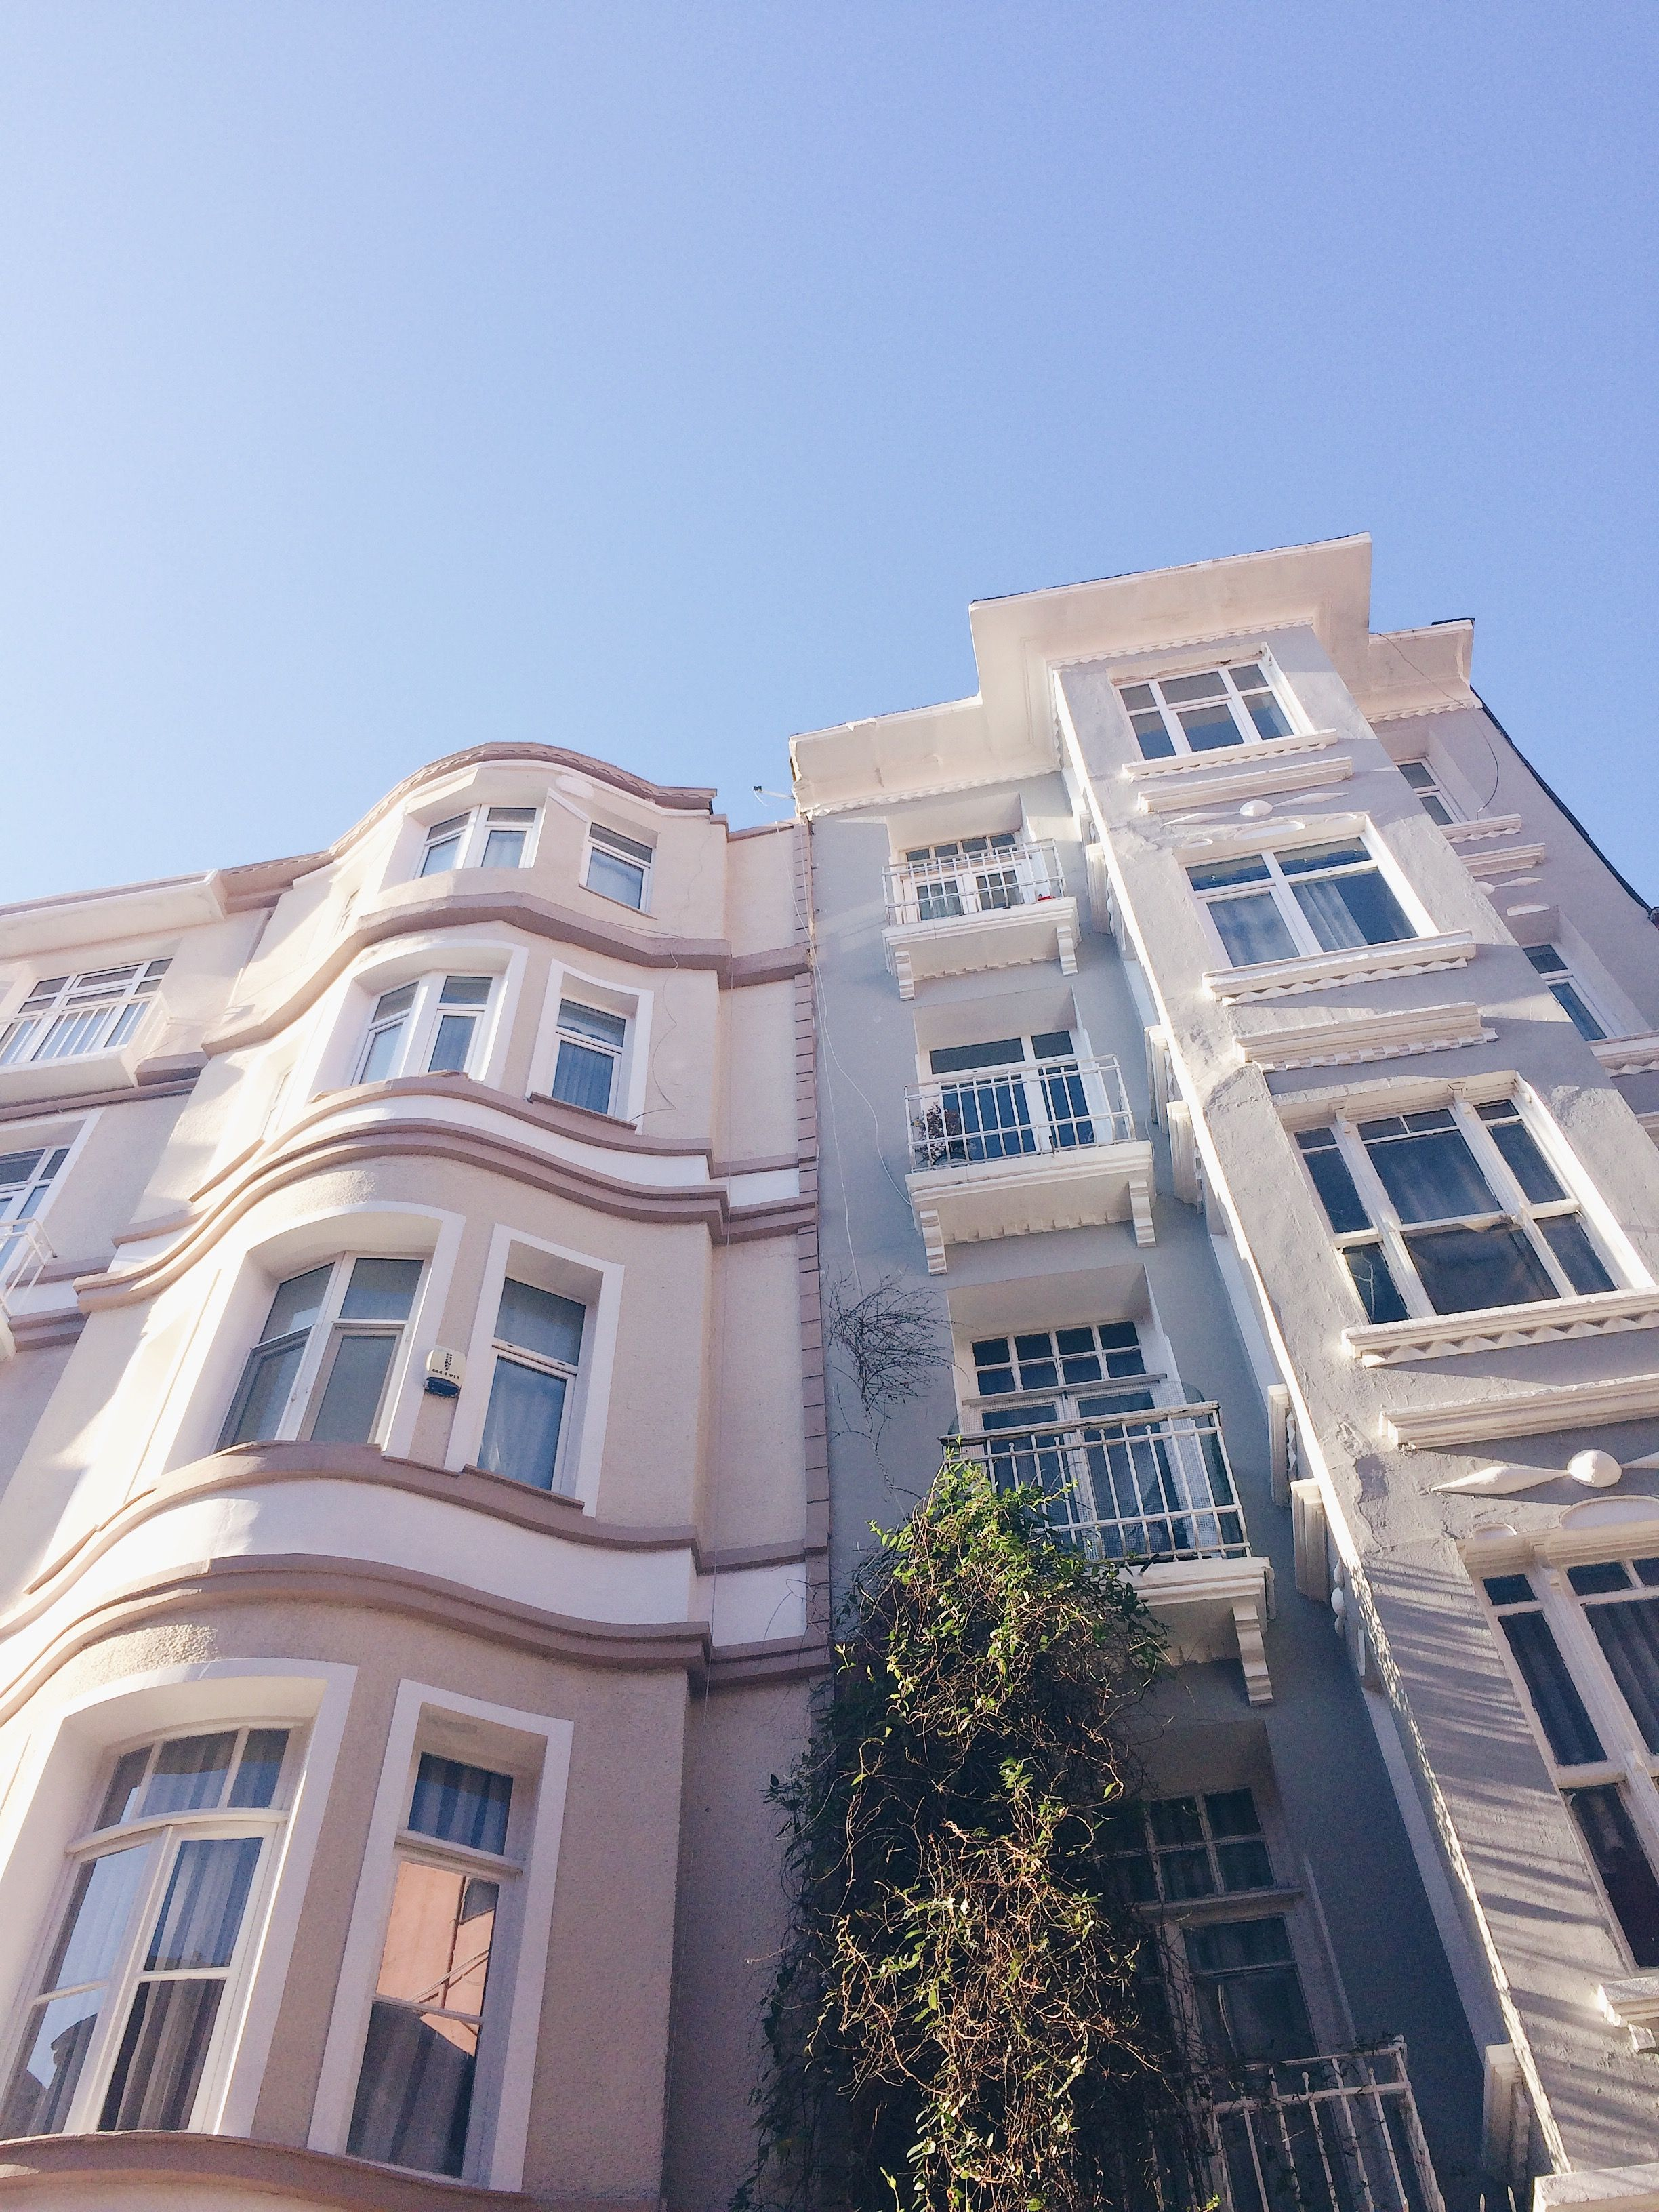 Lovely buildings in Istanbul #architecture